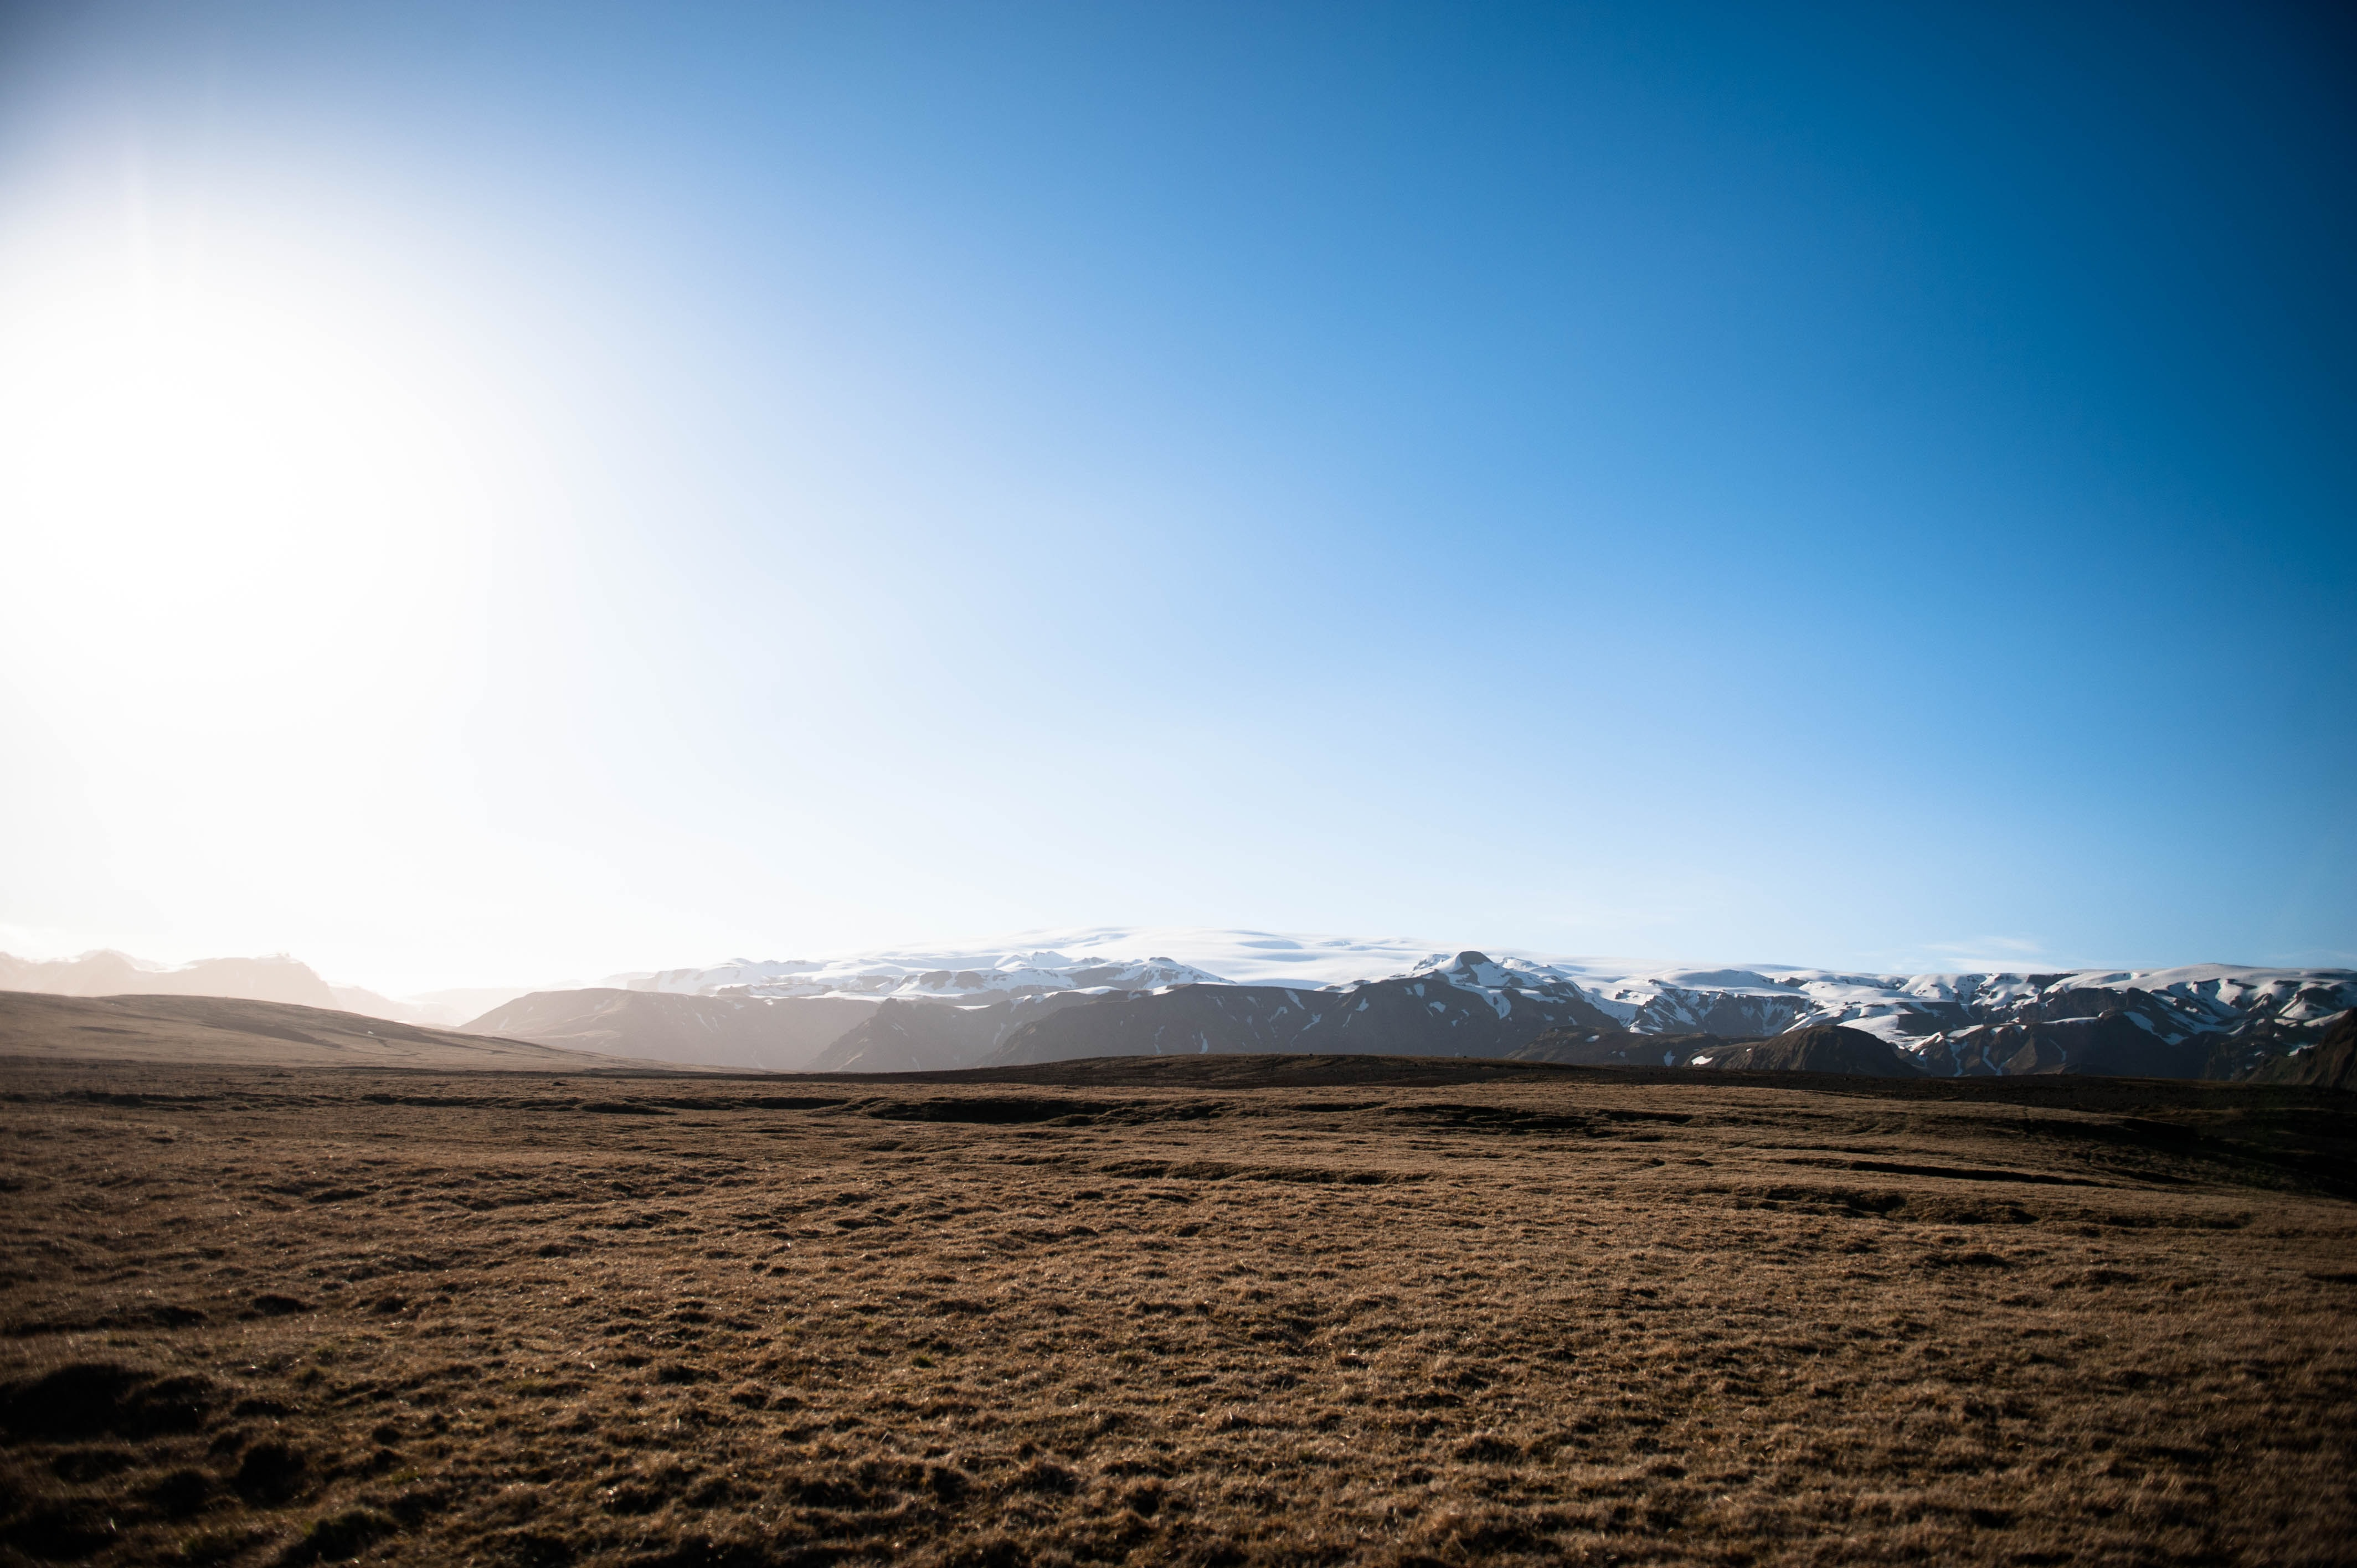 A barren plain with snowy mountains on the horizon